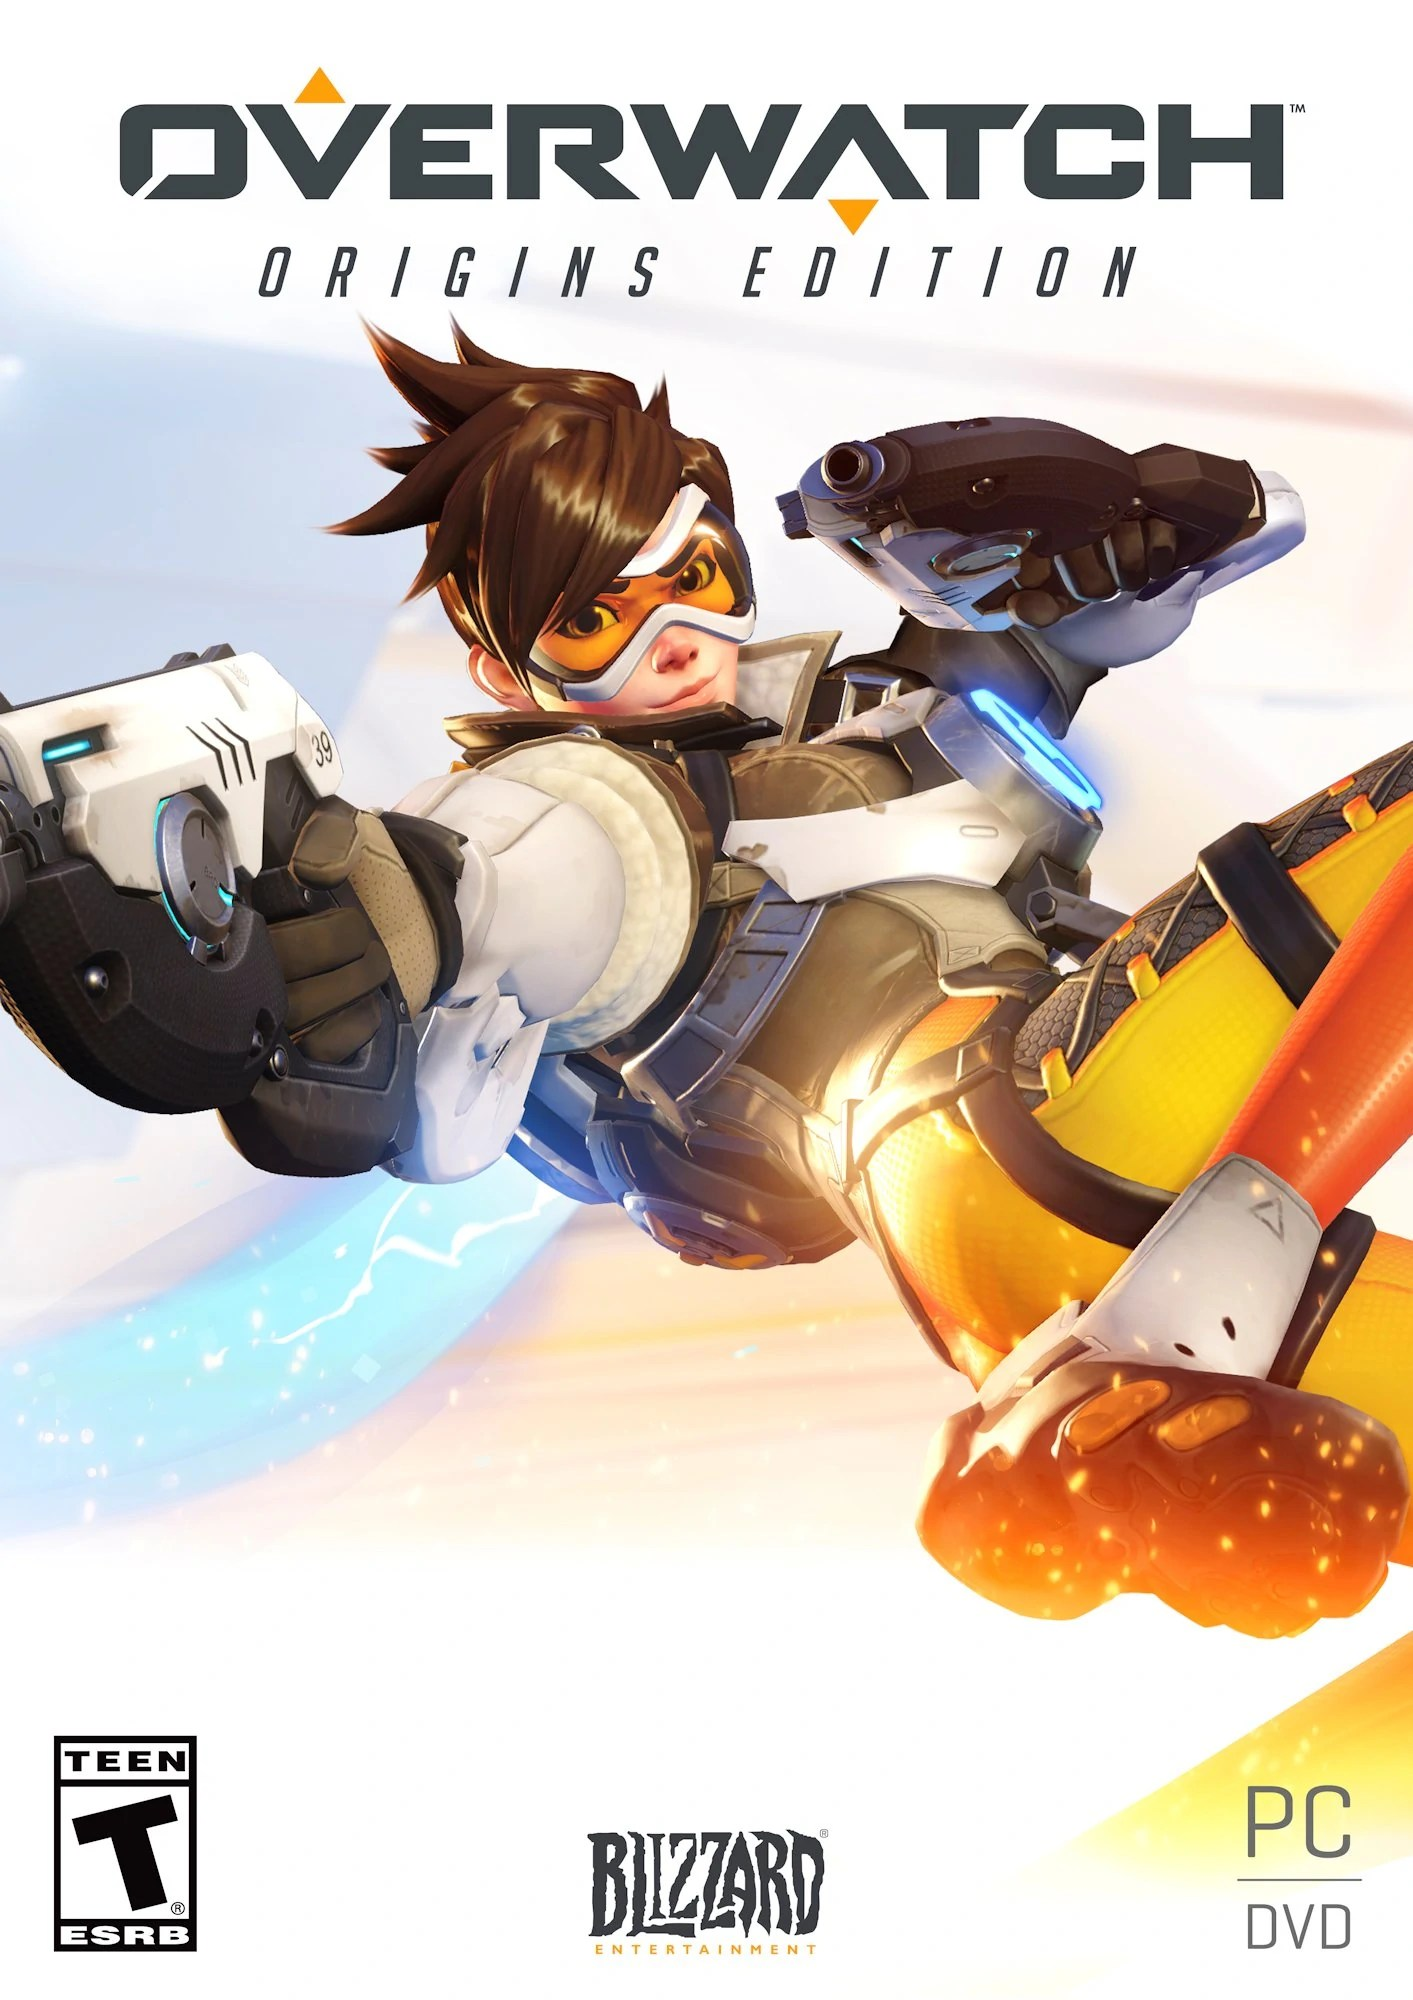 Game Of The Year Edition Overwatch Wiki FANDOM Powered By Wikia